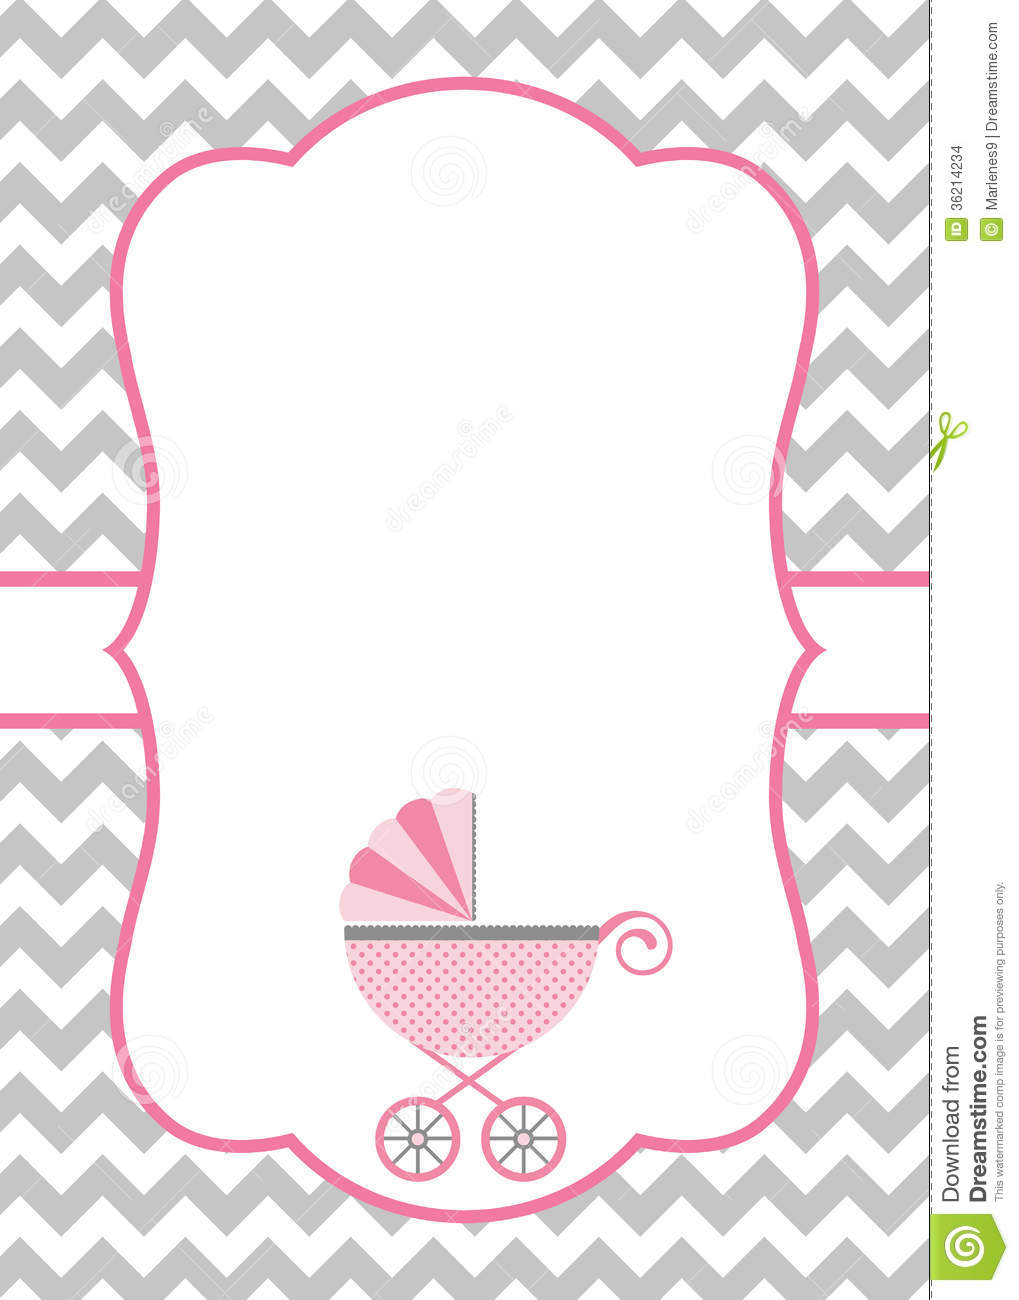 Baby Shower Card Stock Images - Image: 36214234